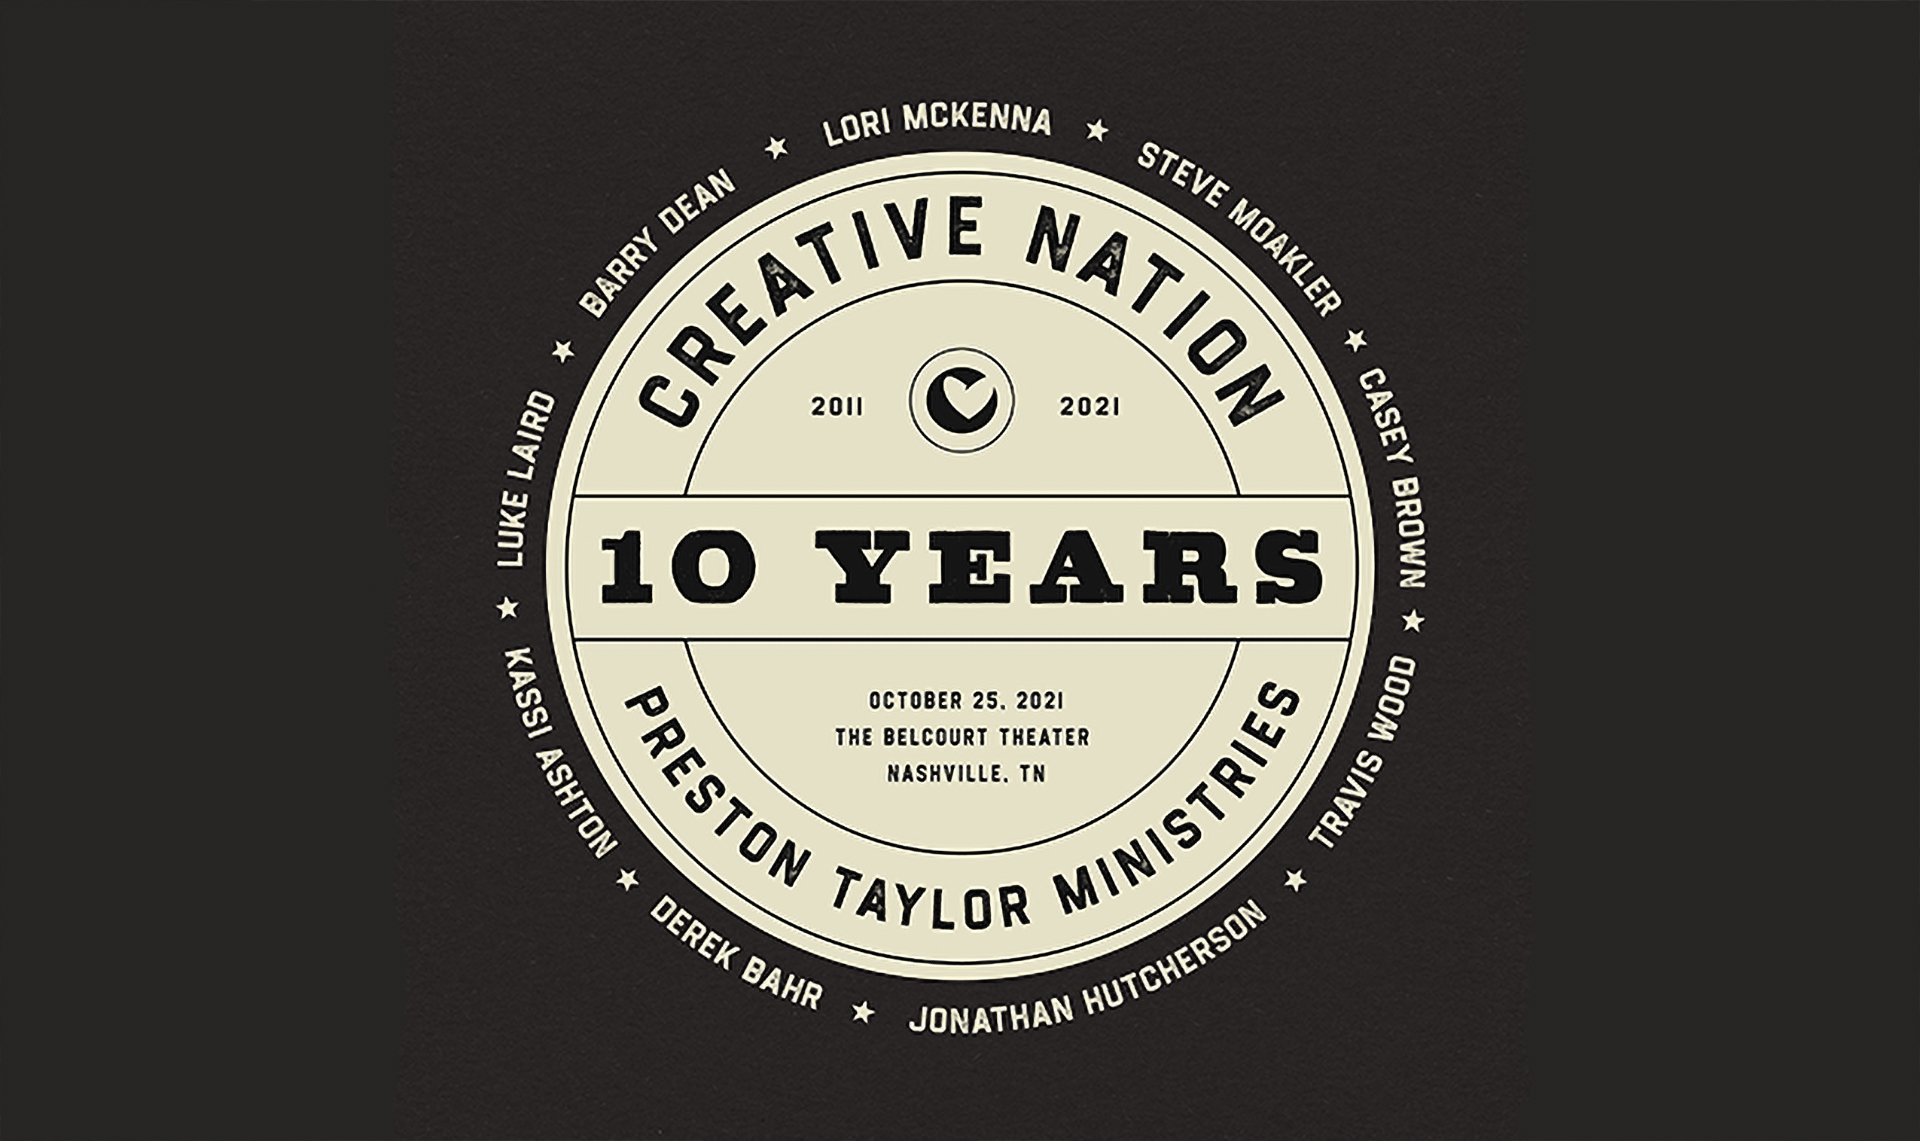 Rental Event: The 10th Annual Benefit for Preston Taylor Ministries